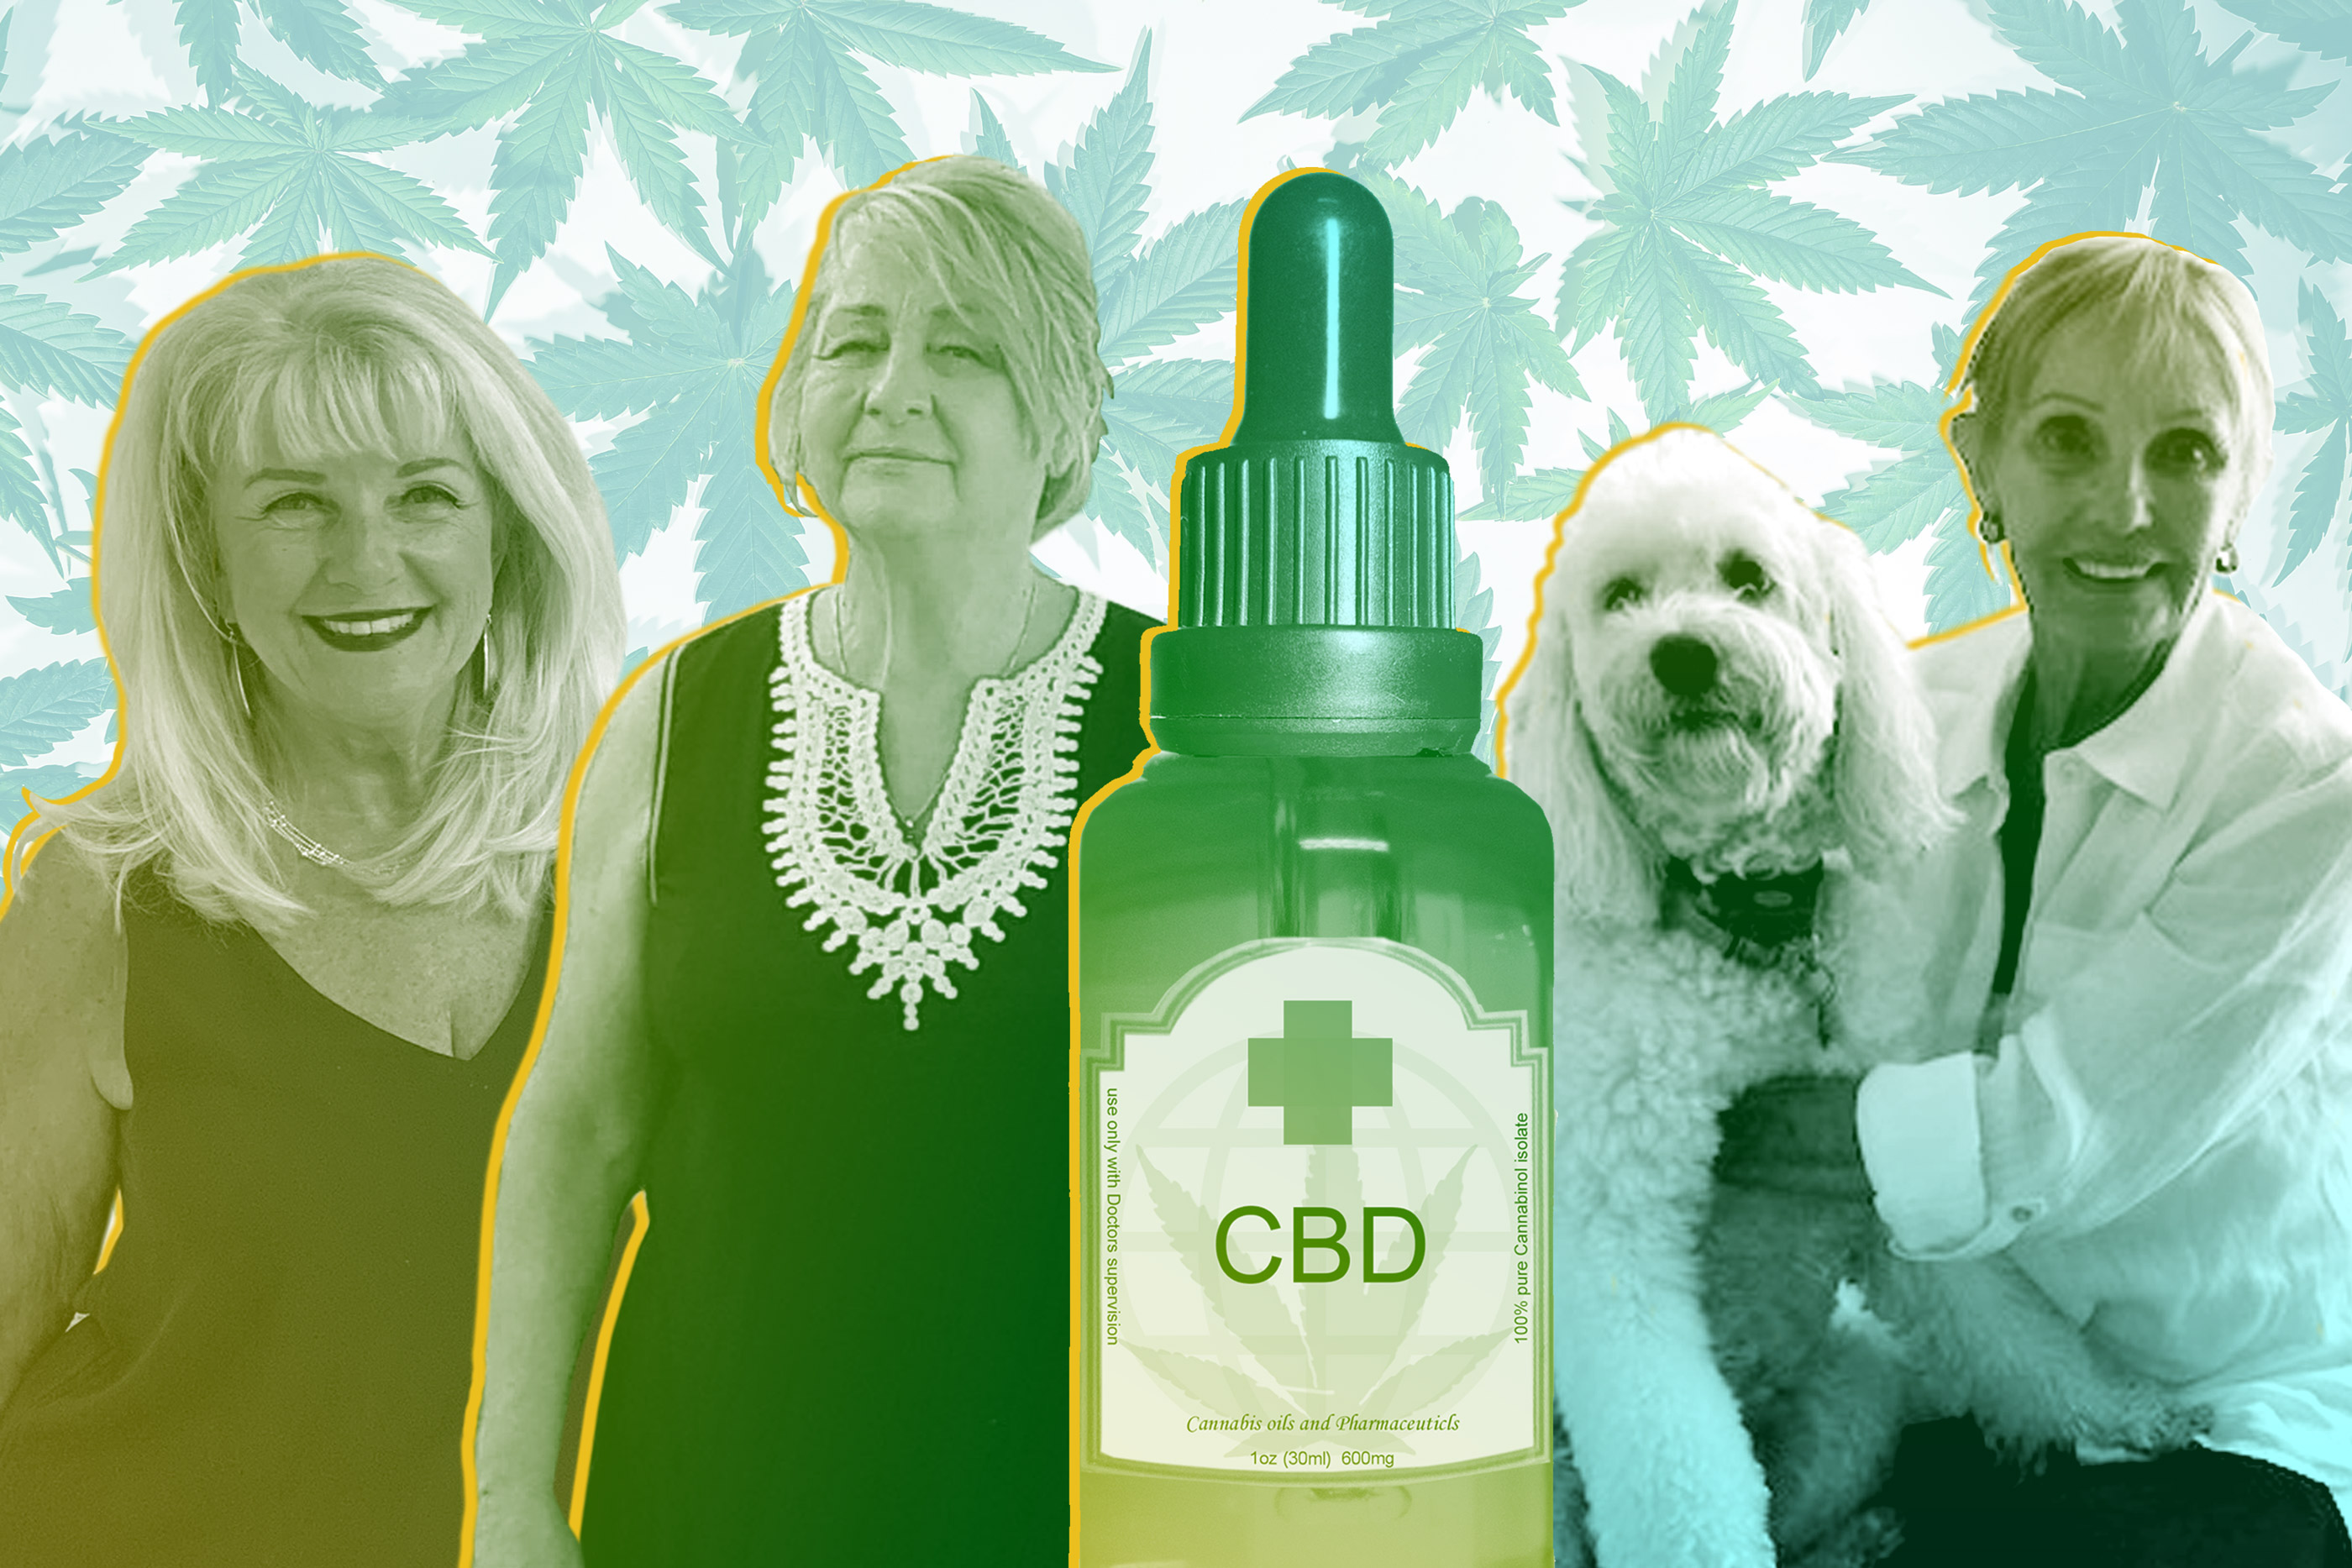 Retirees Are Jumping Into the CBD Boom—and Loving It. Here's What to Know Before You Try, According to Experts